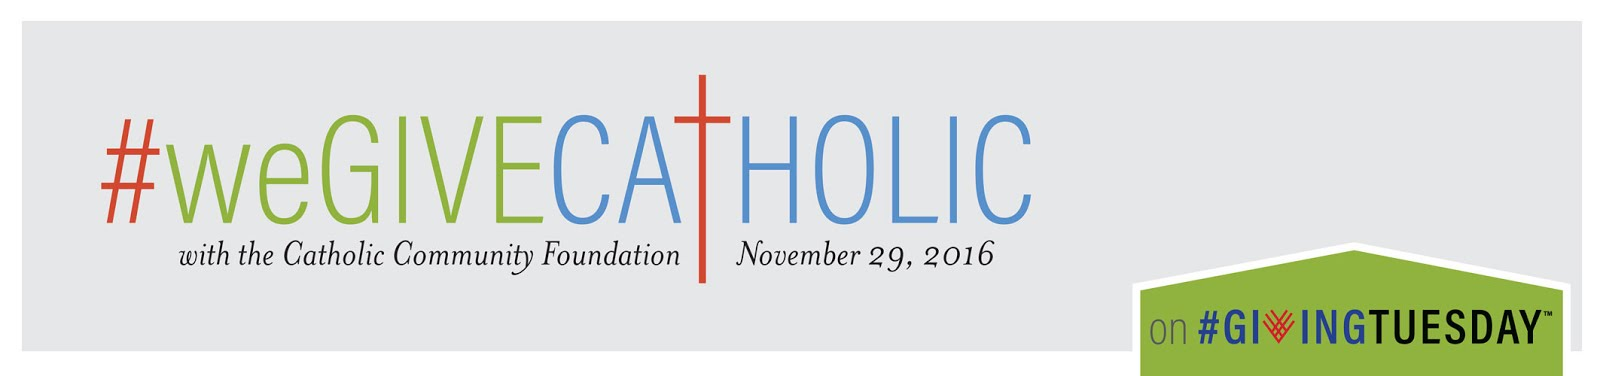 #weGiveCatholic - Giving Tuesday, November 29, 2016